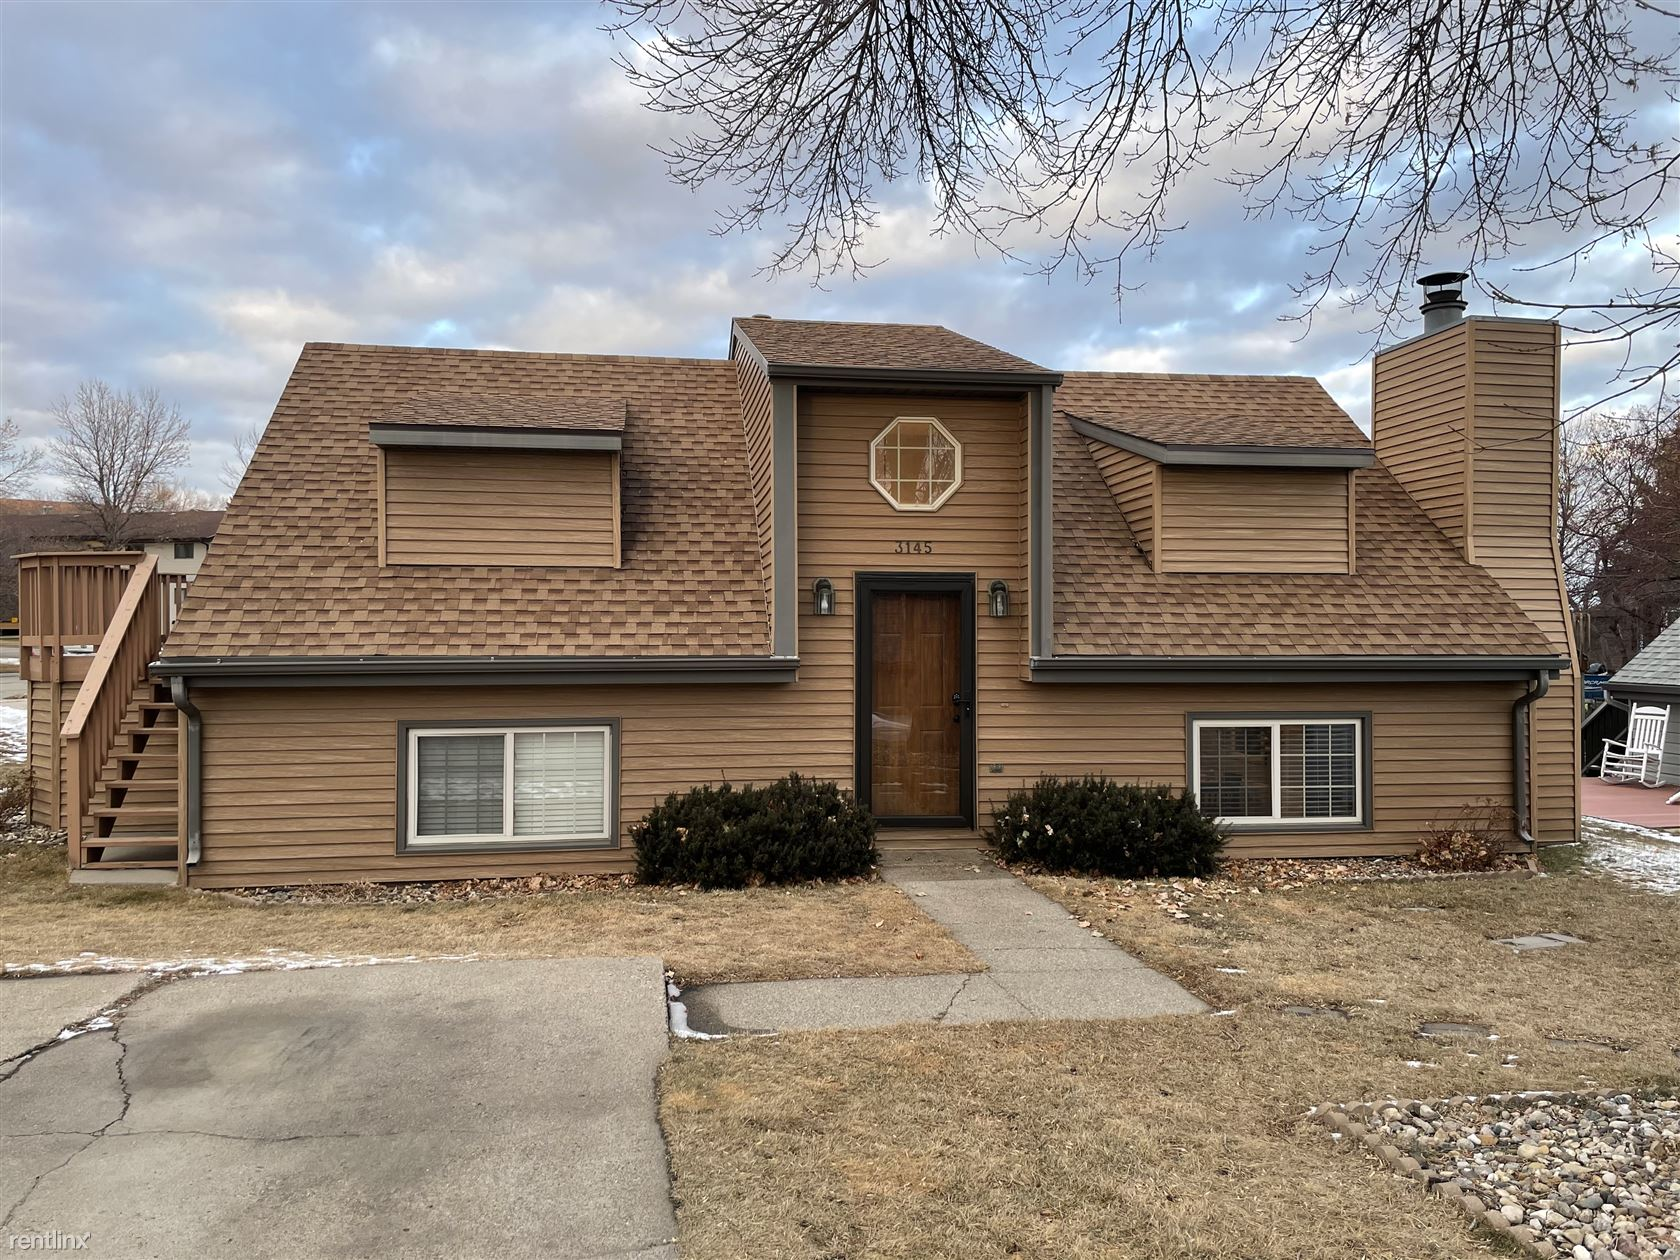 3145 Manitoba Ln, Bismarck, ND - $1,600 USD/ month